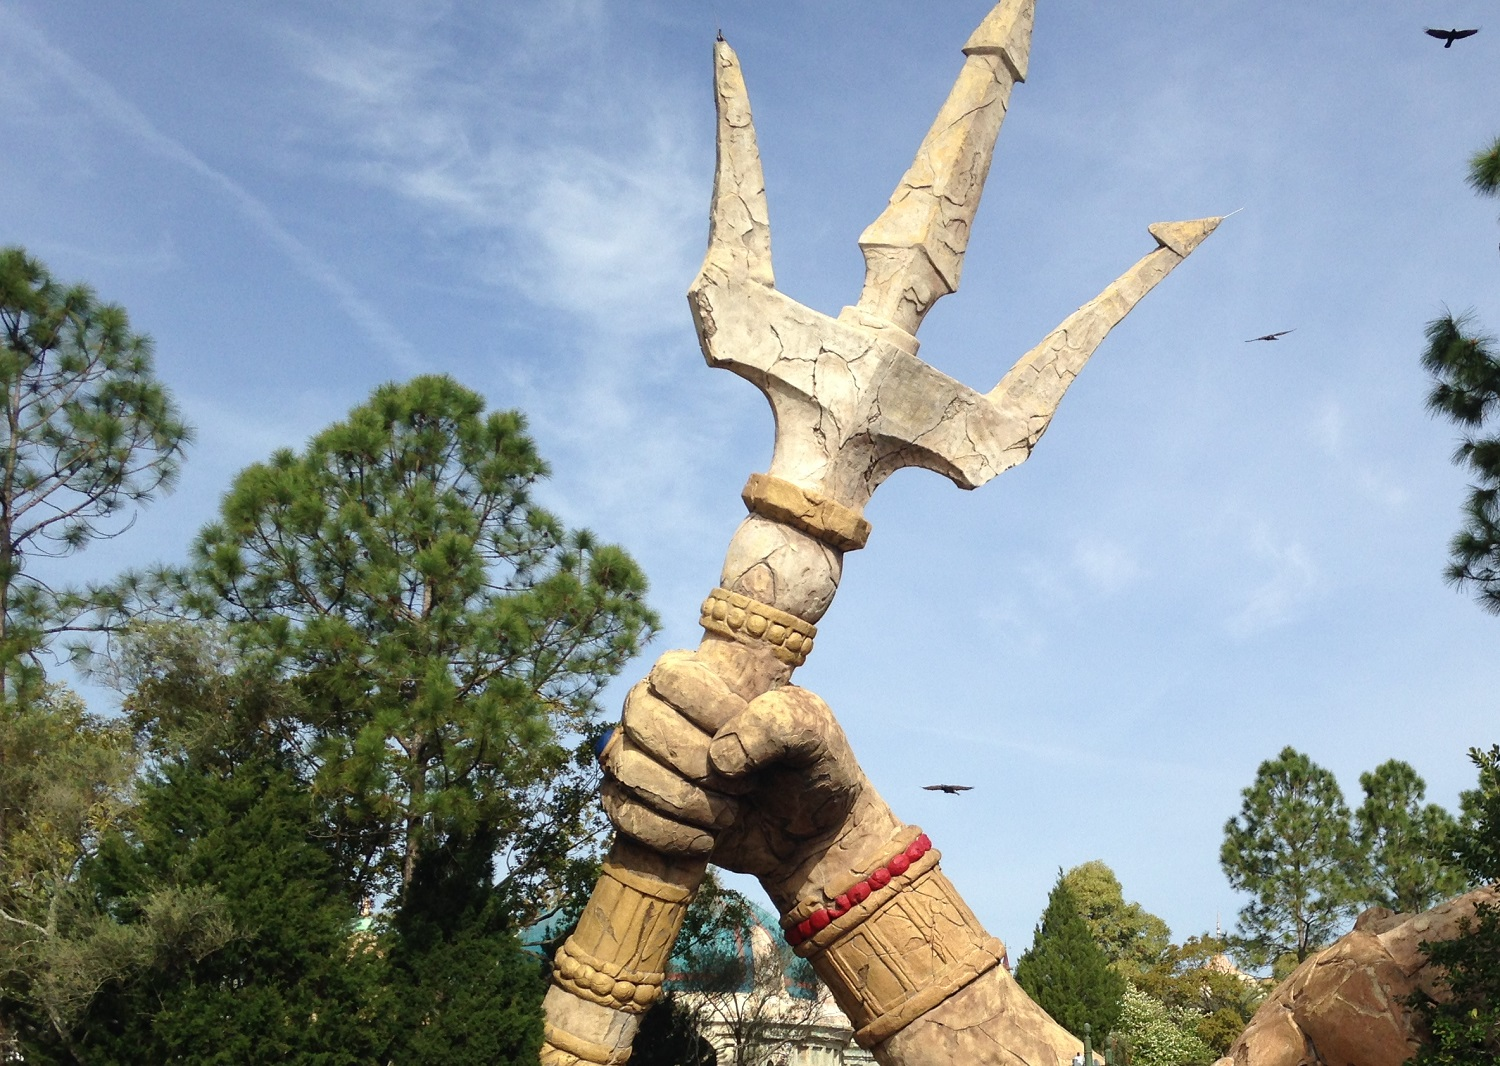 Poseidon's trident can be seen outside of the Poseidon's Fury attraction.